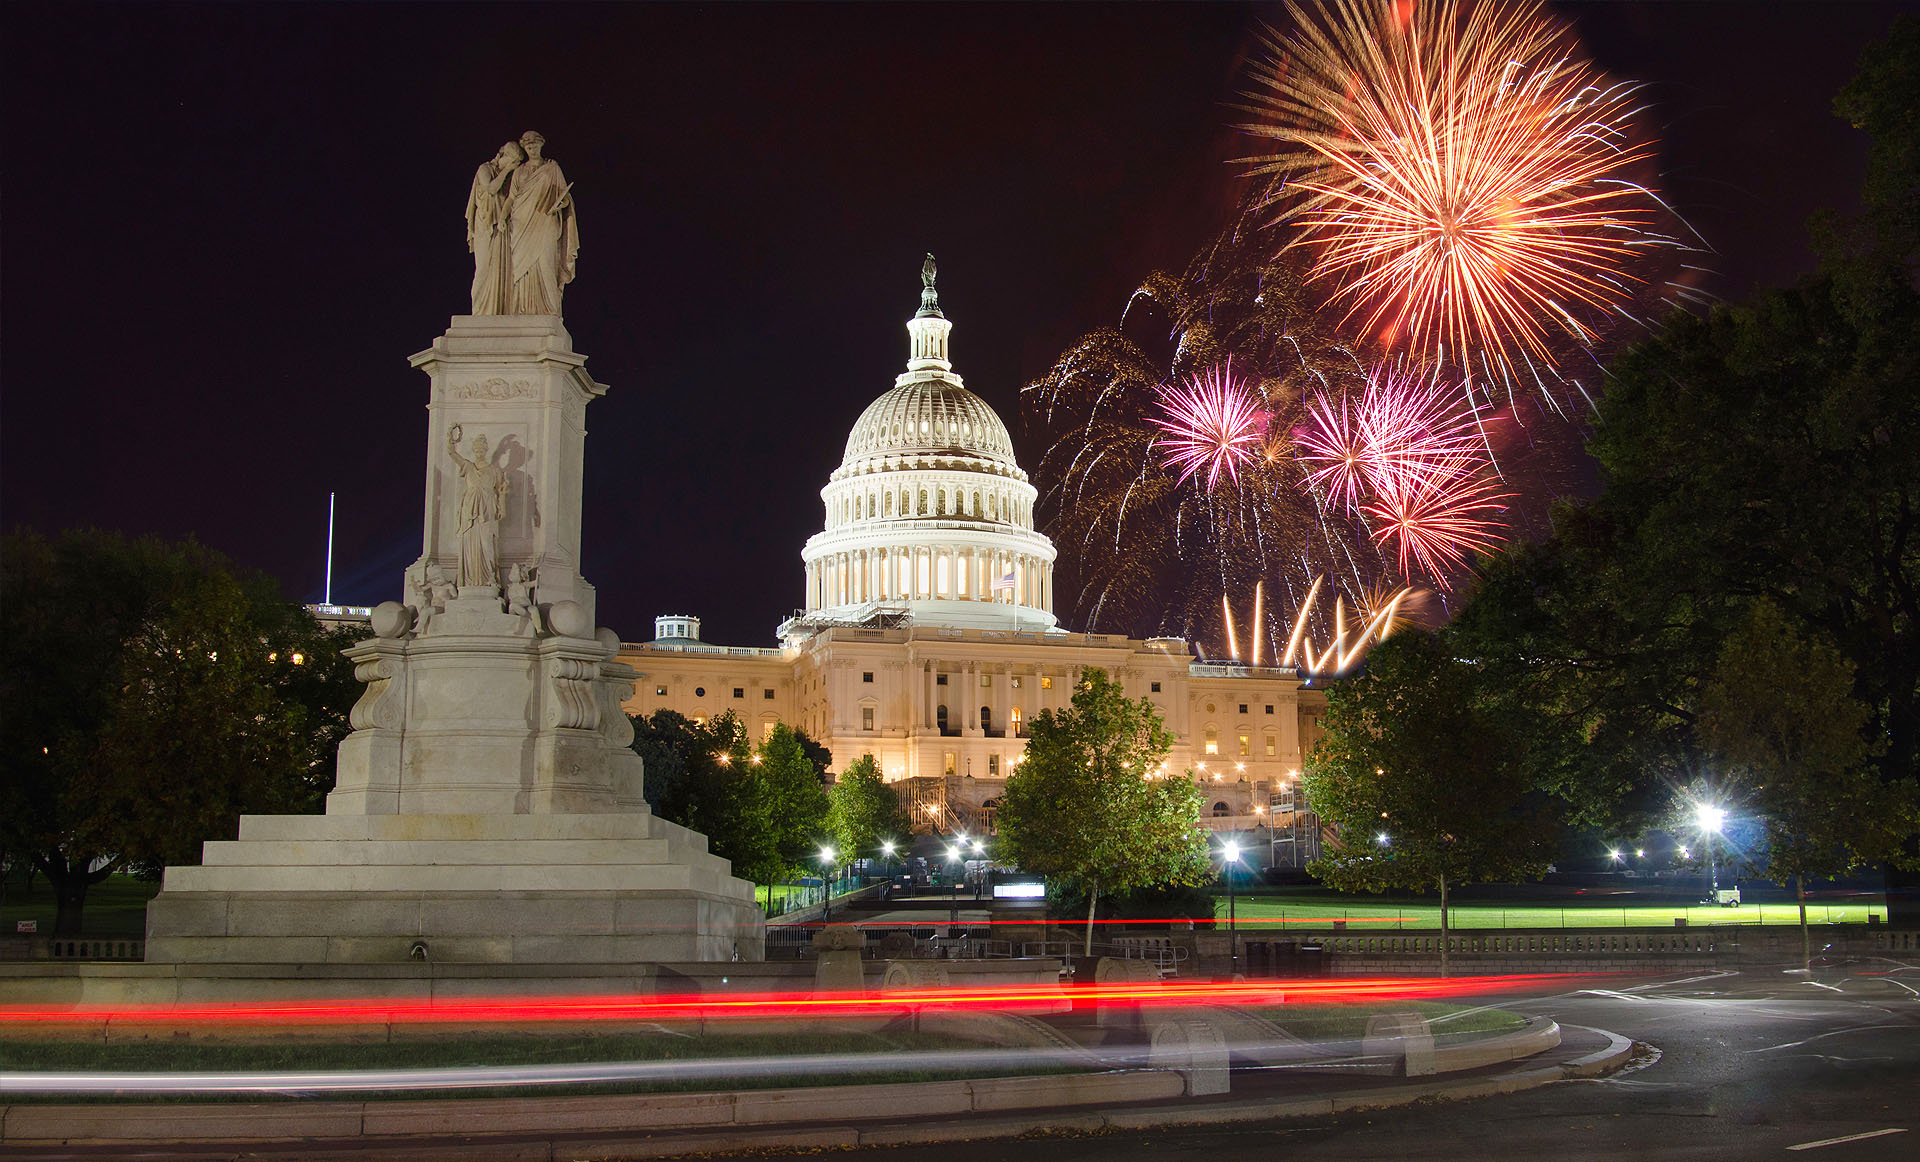 The Best Places to Celebrate New Year's Eve in Washington DC